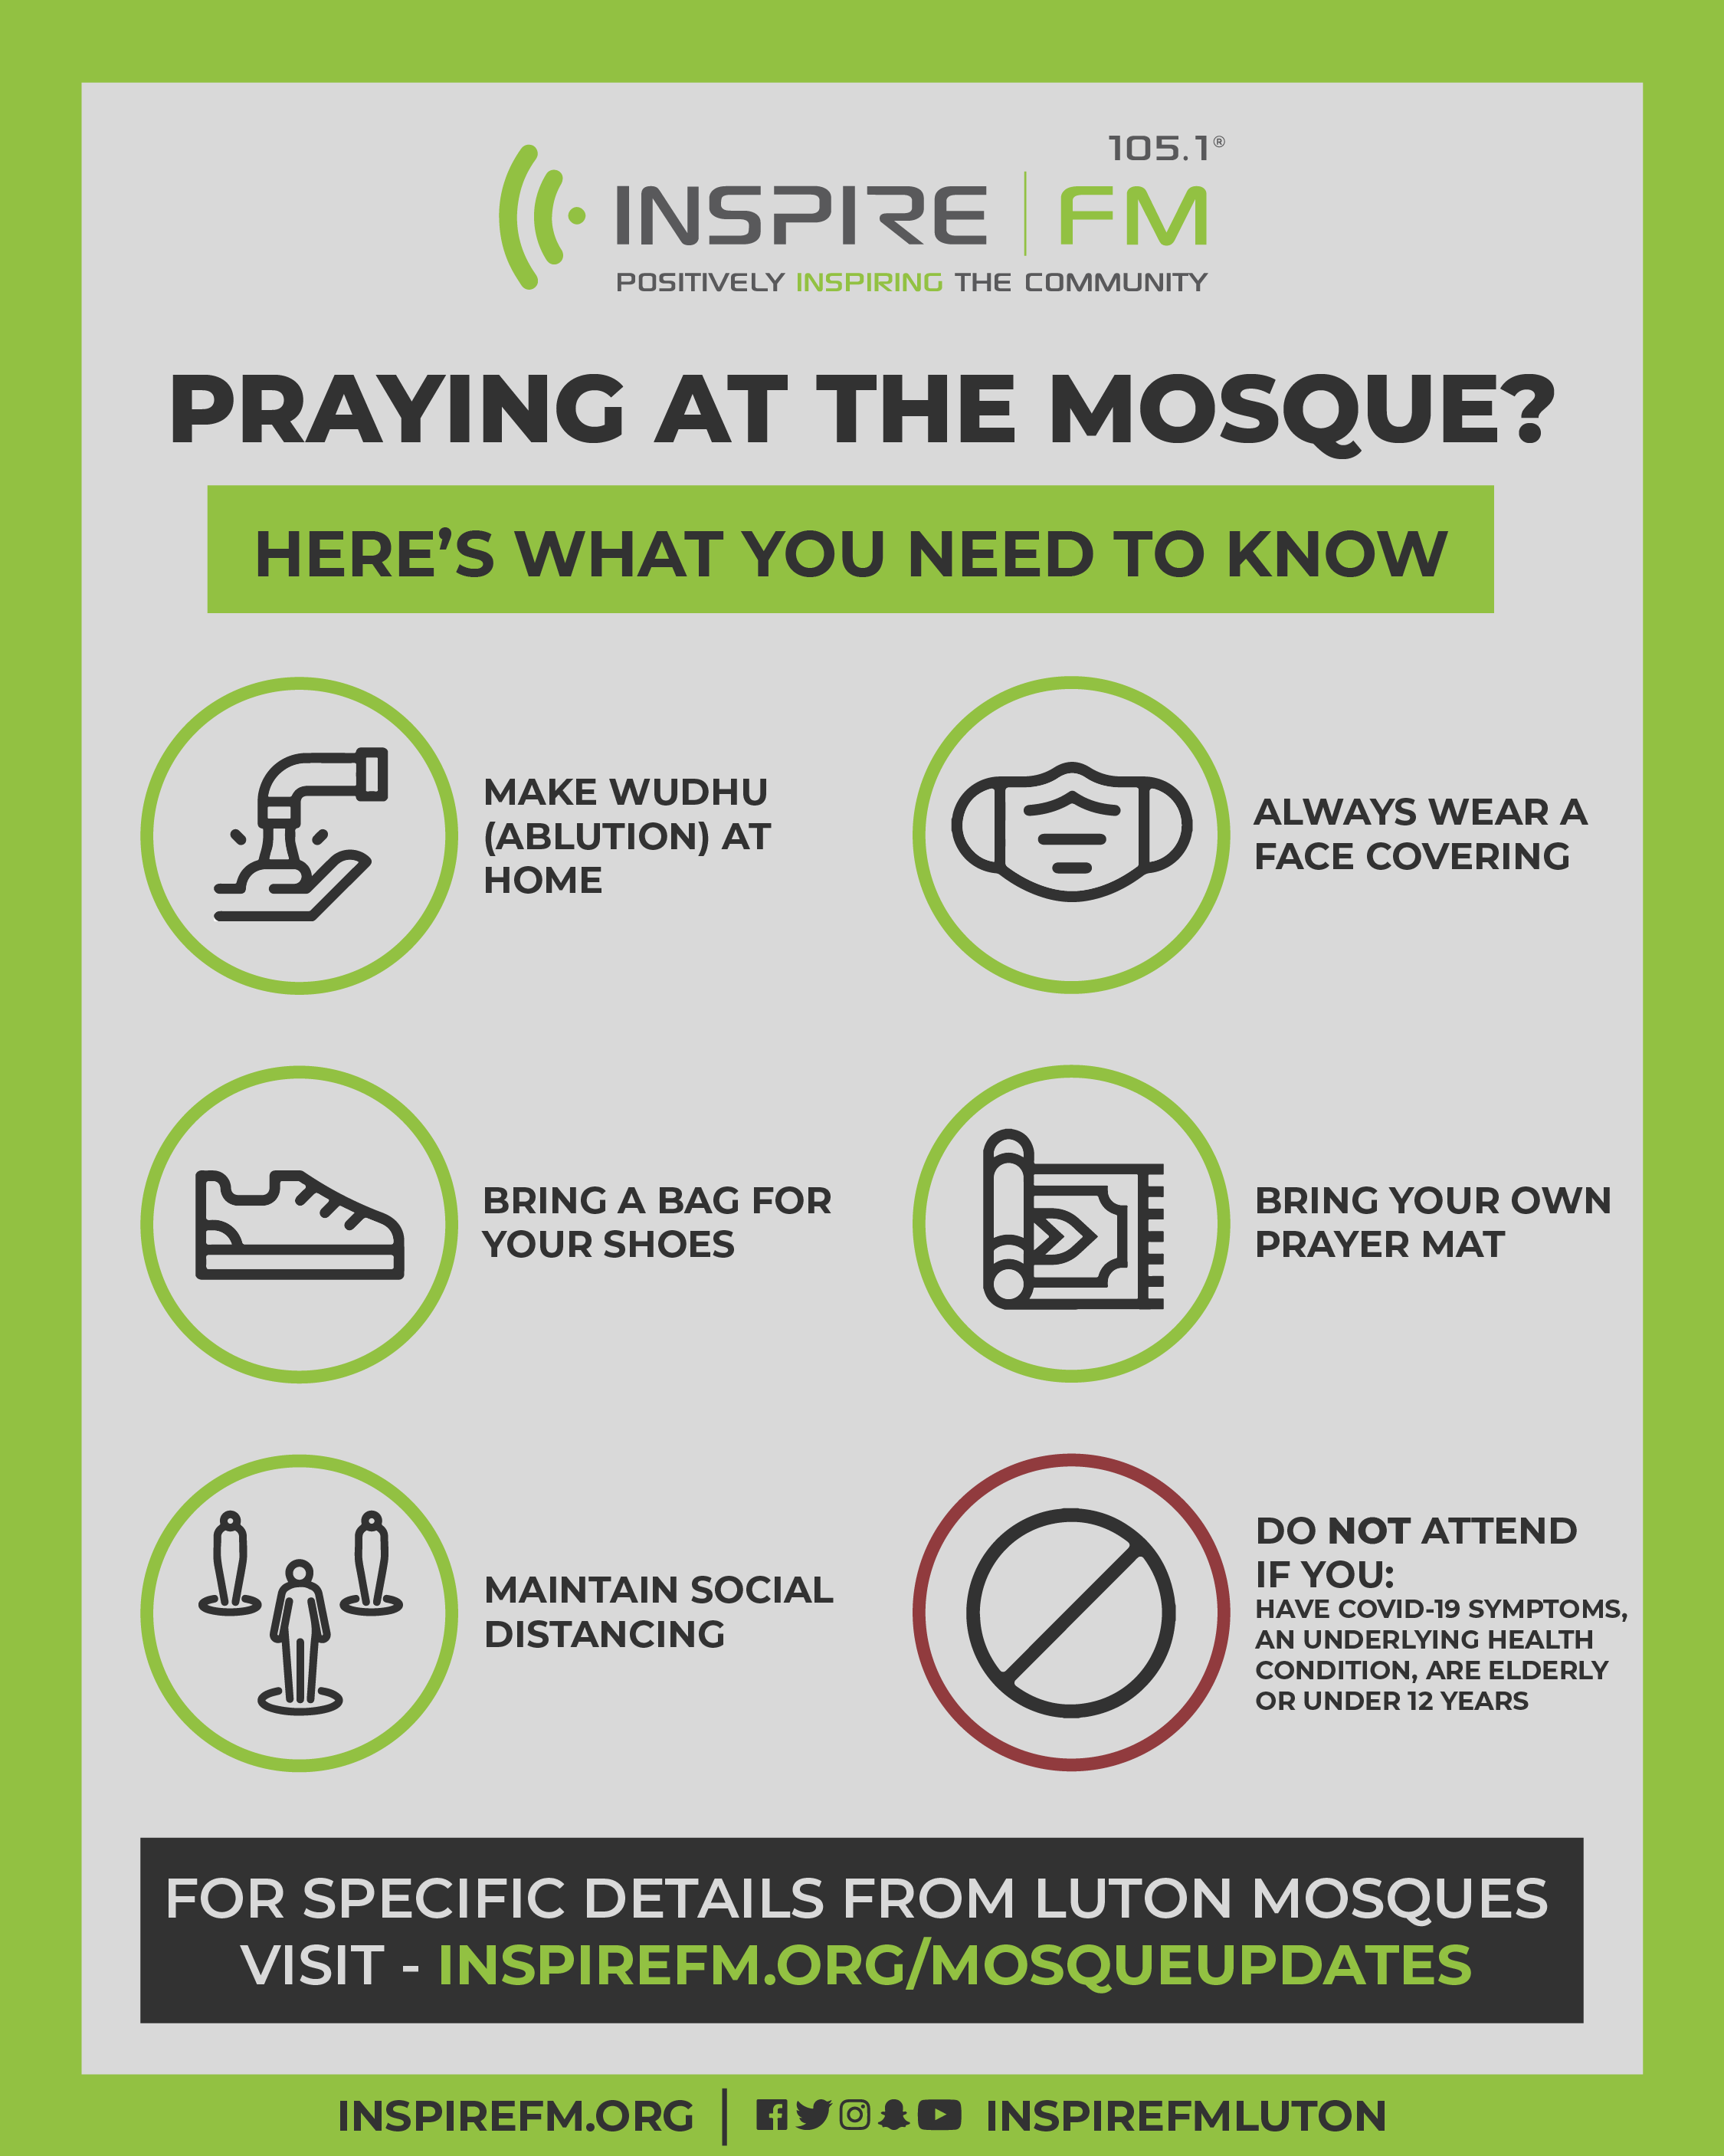 "graphic titled ""Praying at the mosque? Here's what you need to know"". Tap icon with text - make ablution at home. Mask icon with text - always wear a face covering. Show icon with text - bring a bag for shoes. Prayer mat icon with text - bring your own prayer mat. People spread out icon with text - maintain social distancing. No entry icon with text - do not attend if you have covid-19 symptoms"